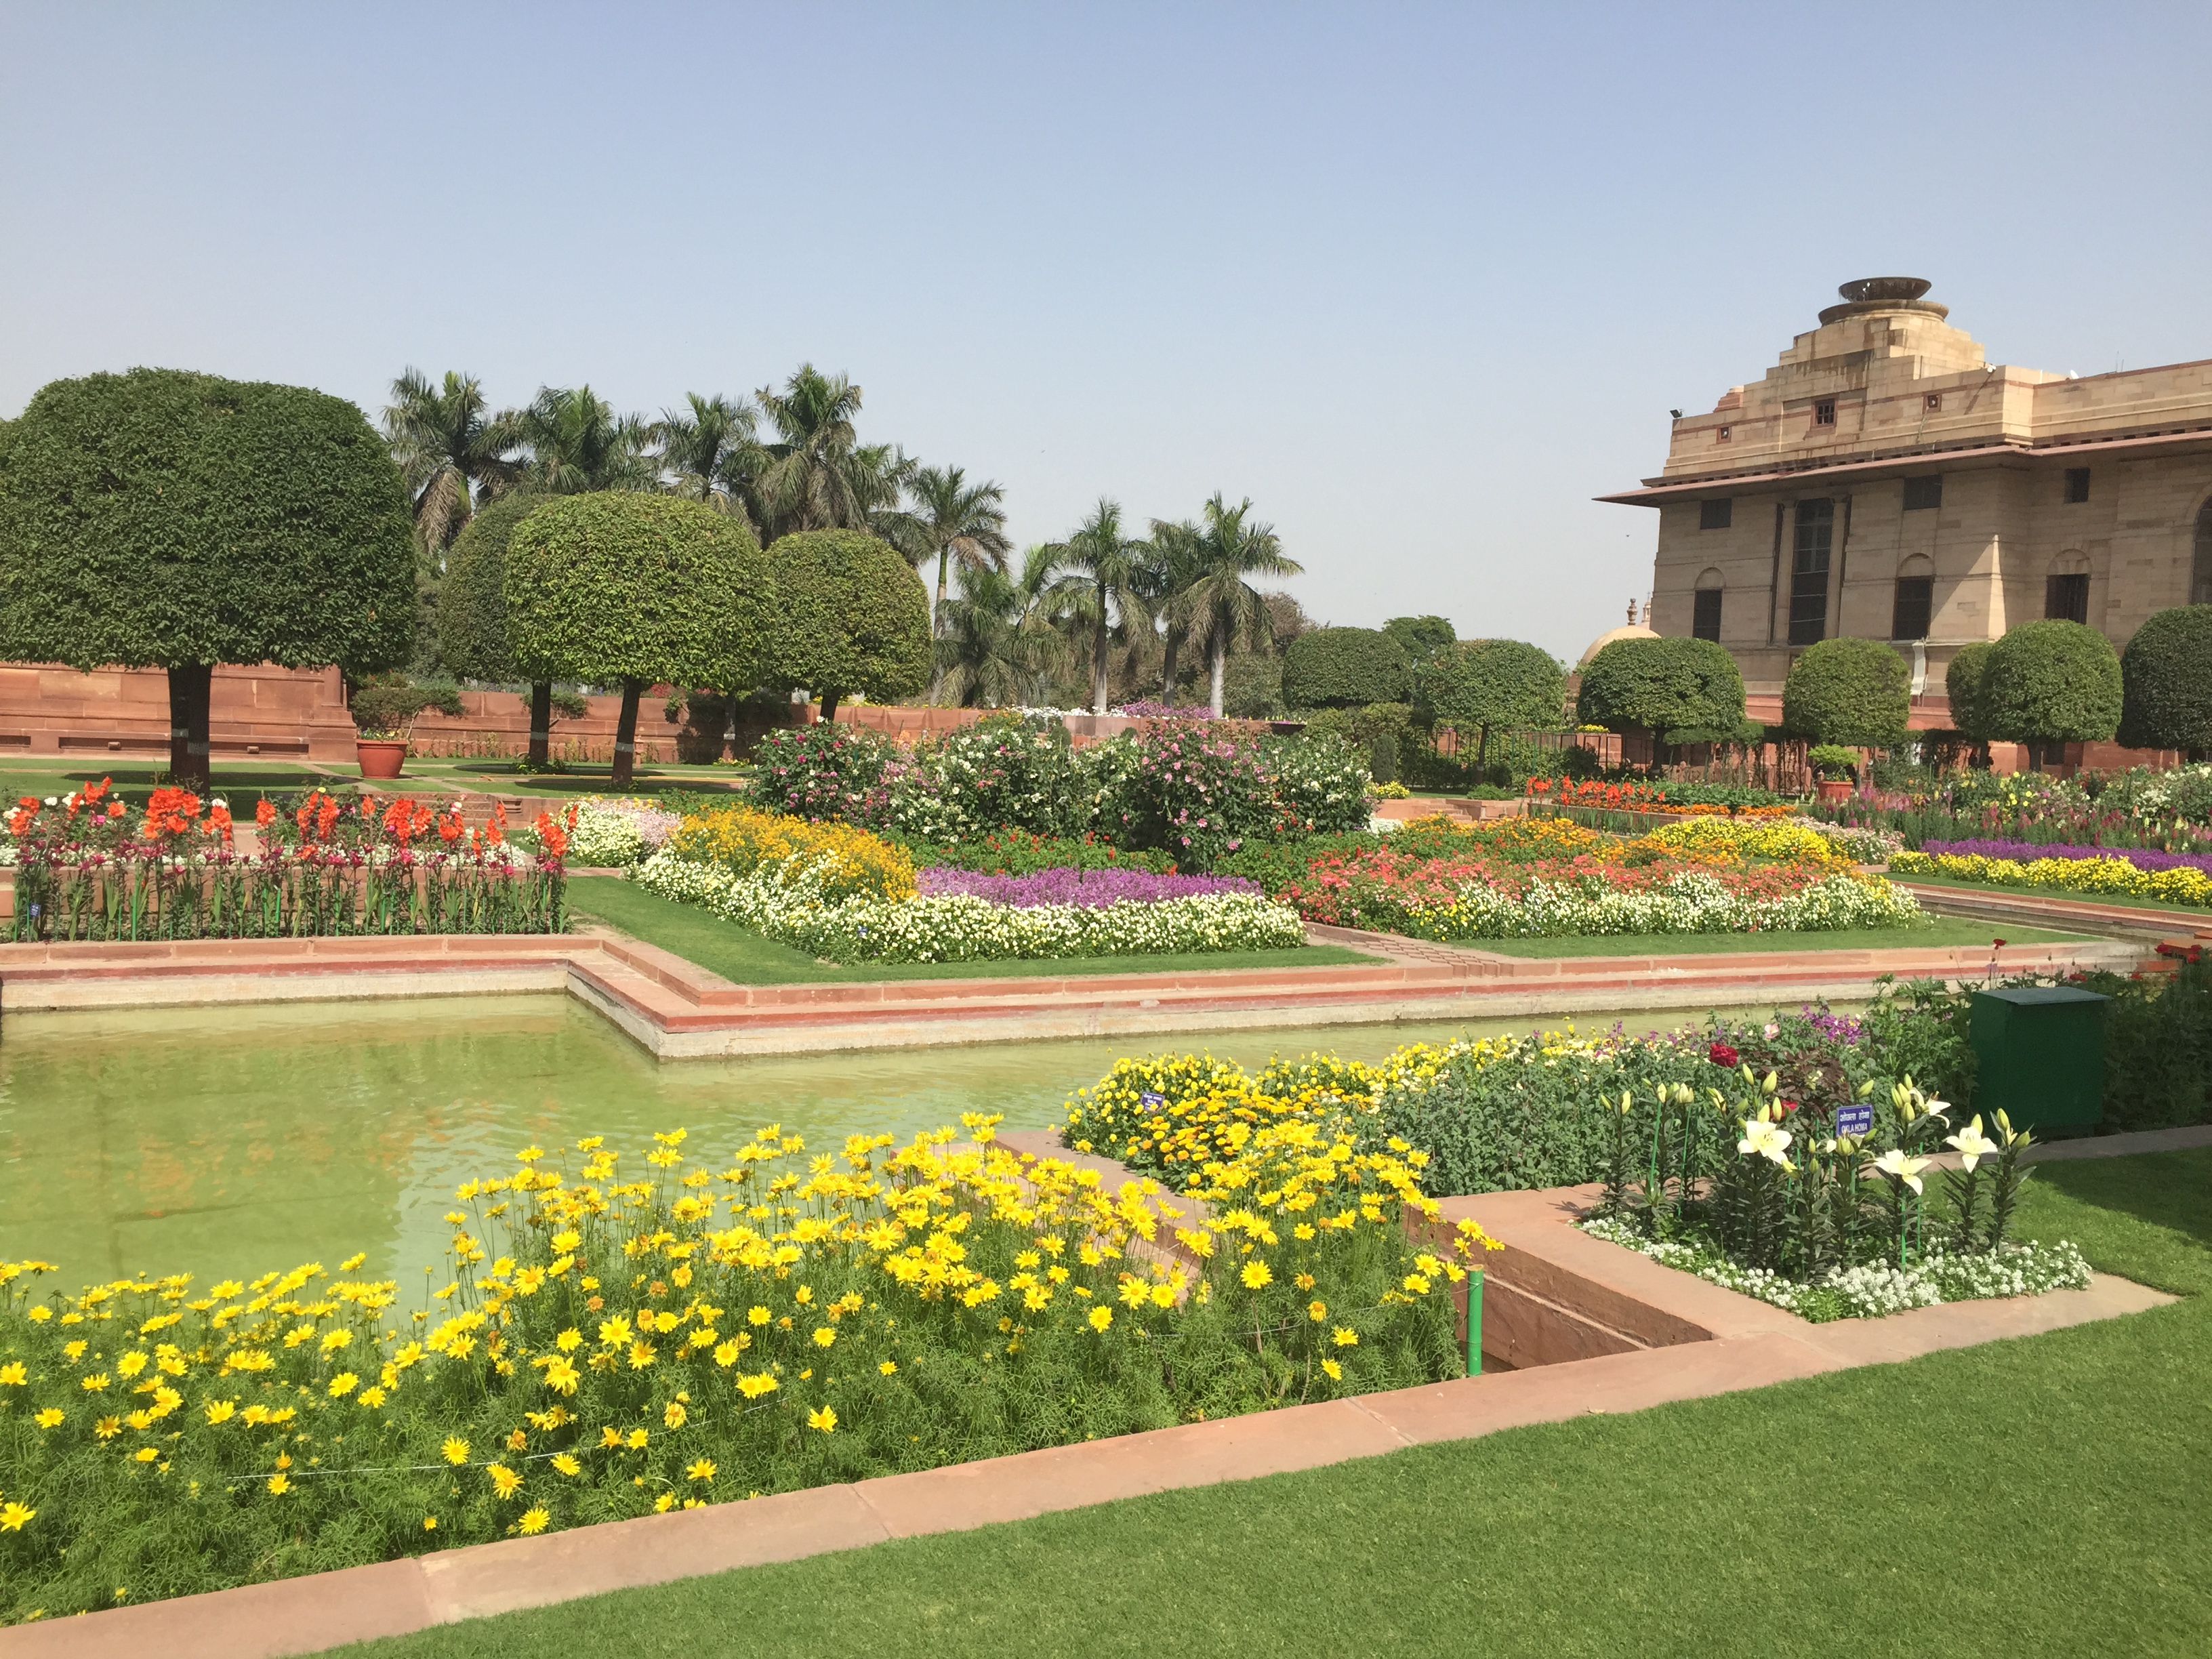 Garden Landscape Design Delhi : Visit to mughal gardens rashtrapati bhawan a few good things